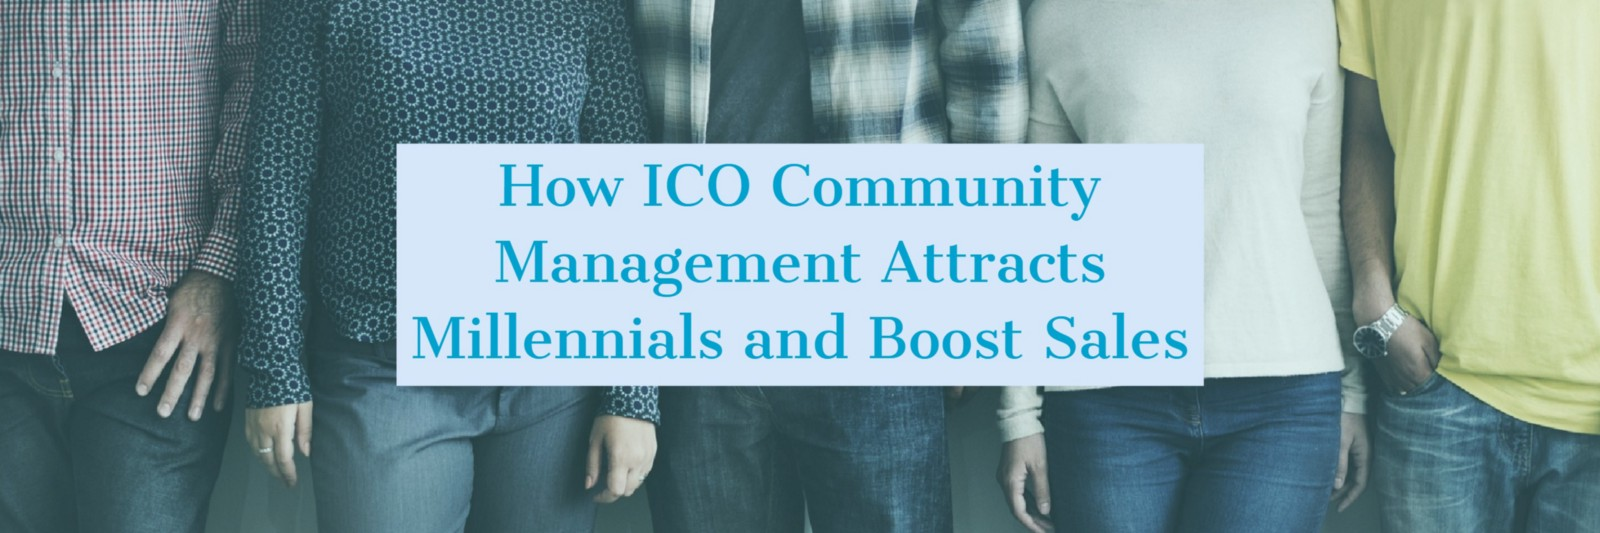 /how-ico-community-management-attracts-millennials-and-boost-sales-d48d7f5c0f41 feature image